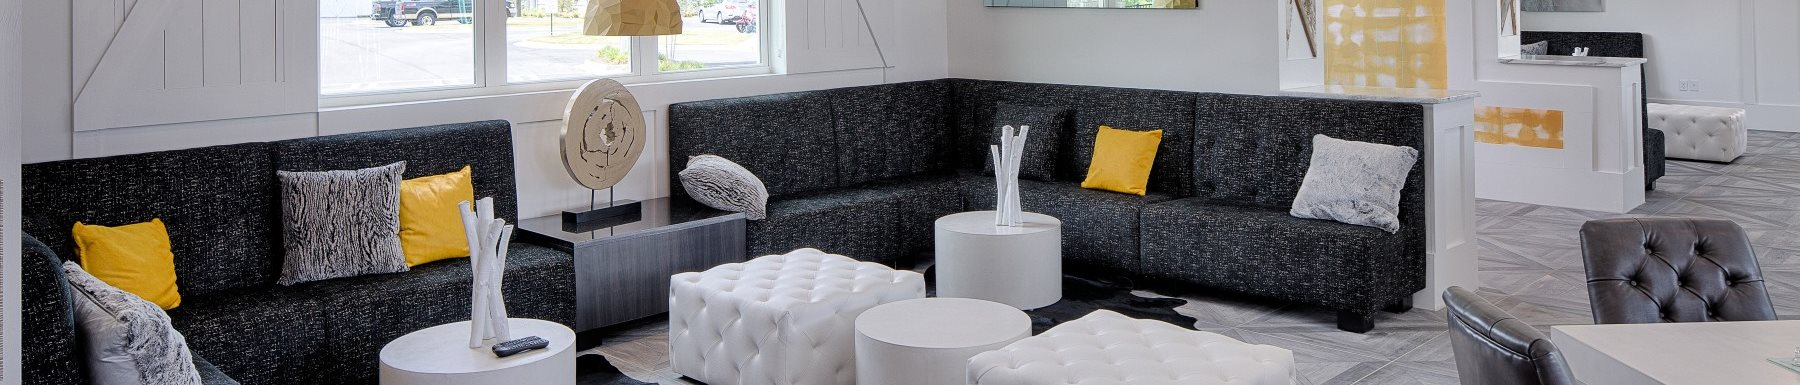 Leasing office in large couch, chairs, ottomans, tables and gray, yellow and white pillows